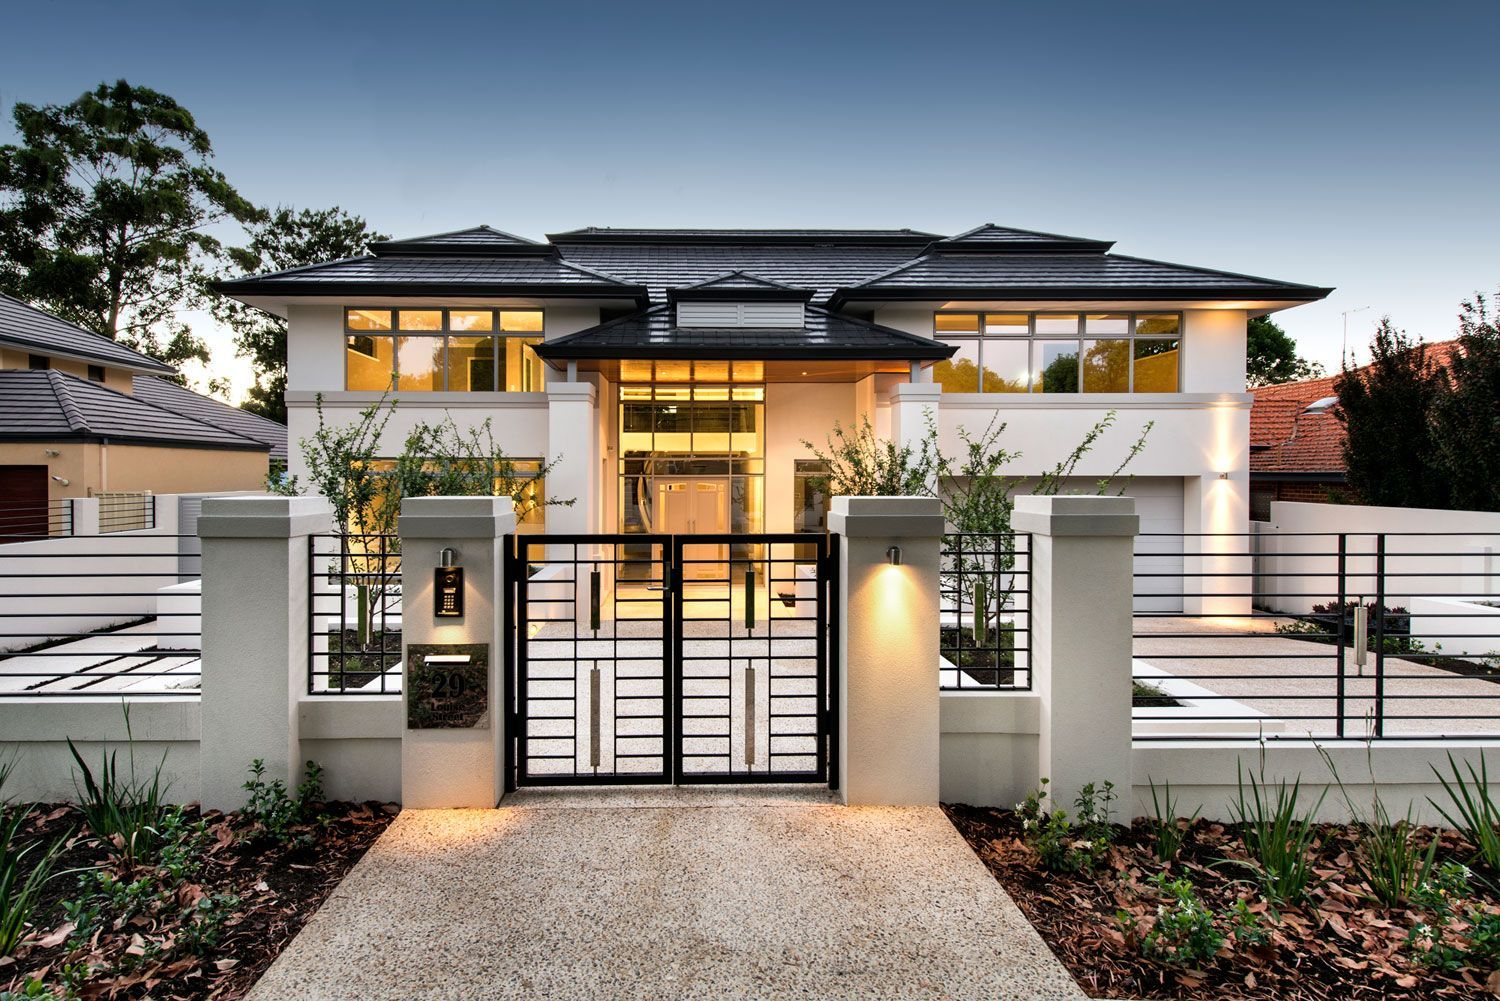 Home in perth by cambuild also best exterior images facades plans luxury homes rh pinterest